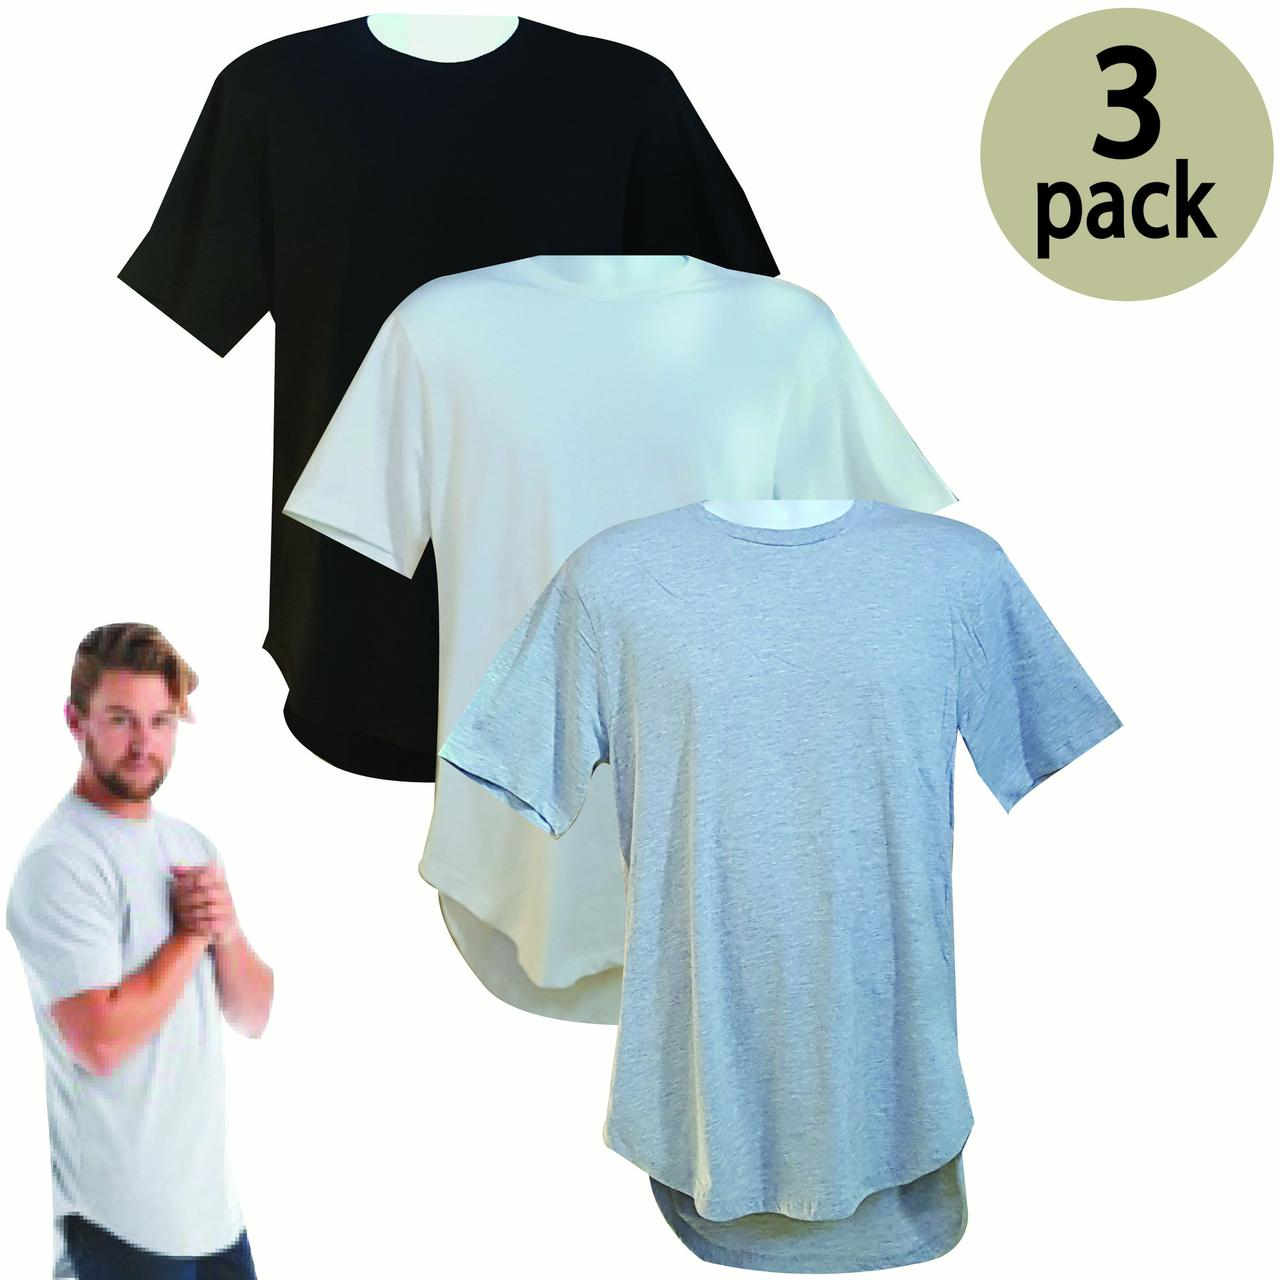 VALUE PACK  > BUY 2 GET 1 FREE > 3 PACK > LANE7 BRAND > Men's Sporty Round  Bottom T-Shirt  (S-2XL) $10 S/H is on the 1st Pack only. In this Pack: (S)(1VintageBlack/1White/1SportGrey)